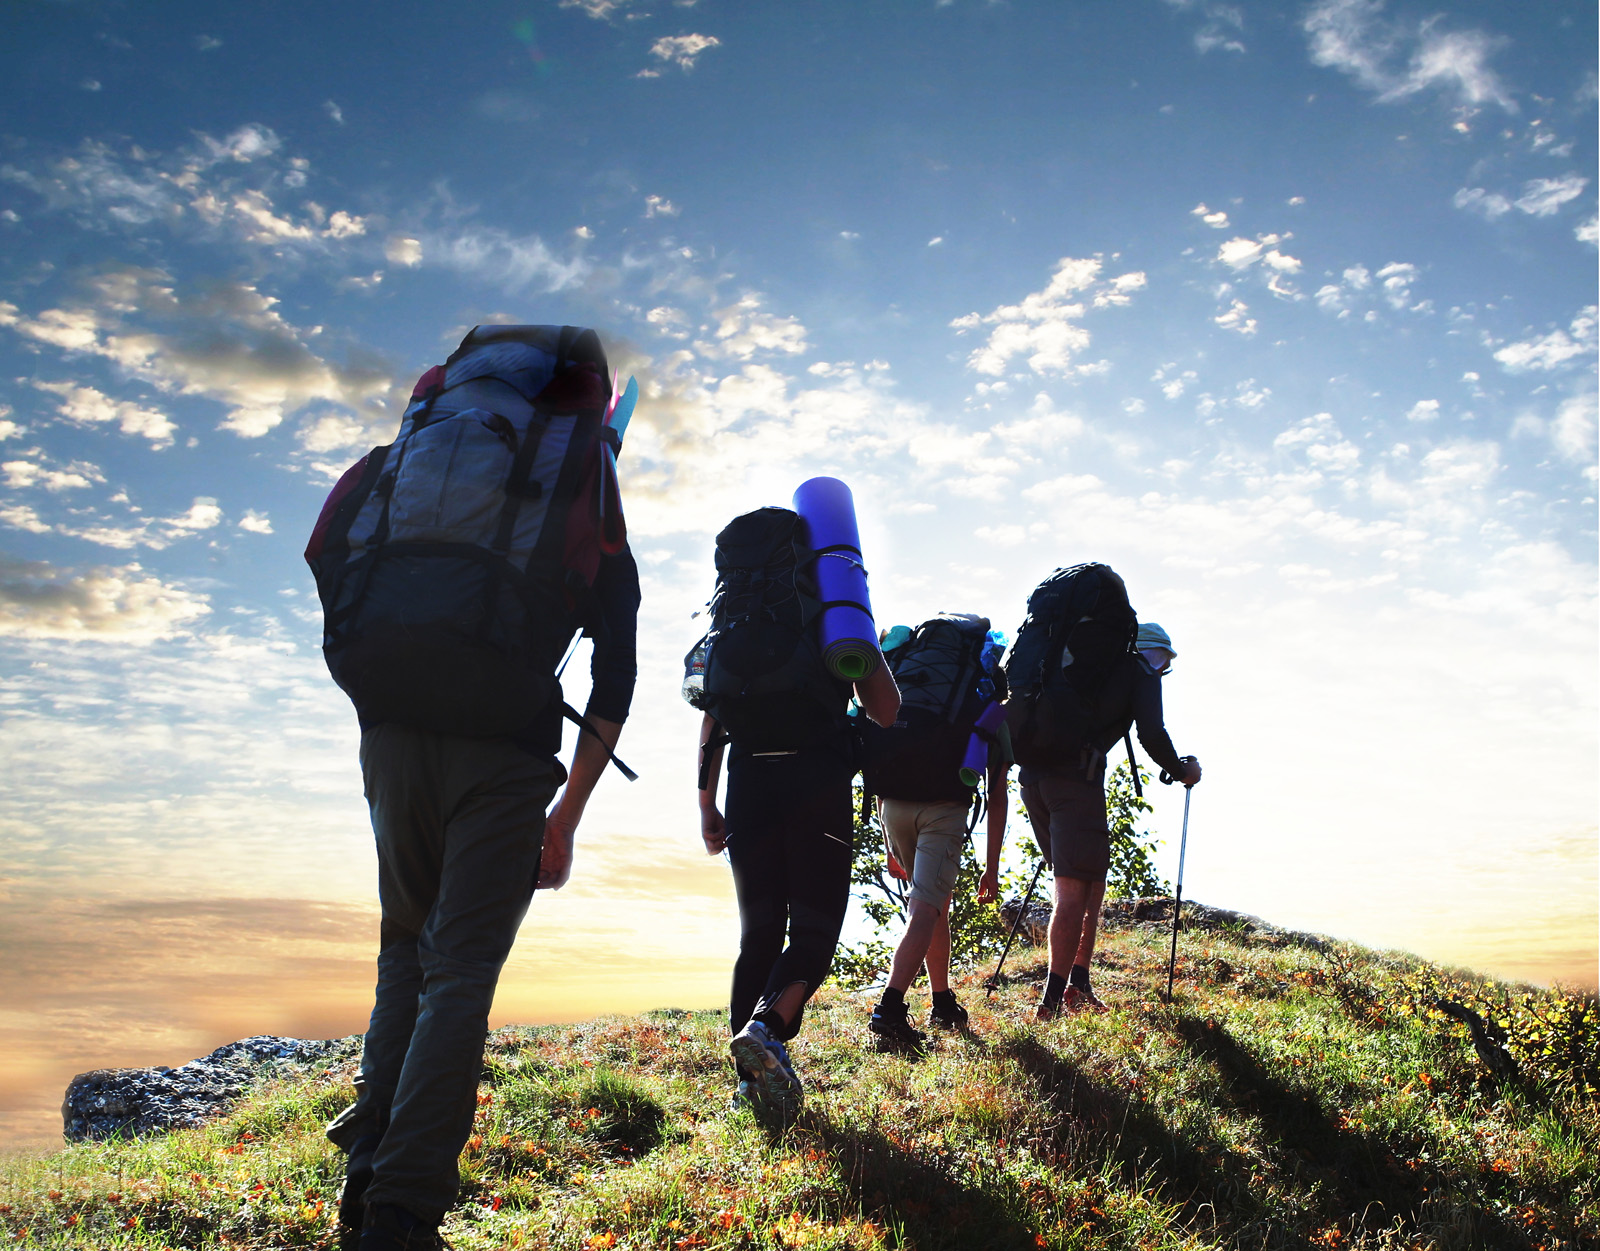 FreeGreatPicture.com 19323 high definition outdoor sports